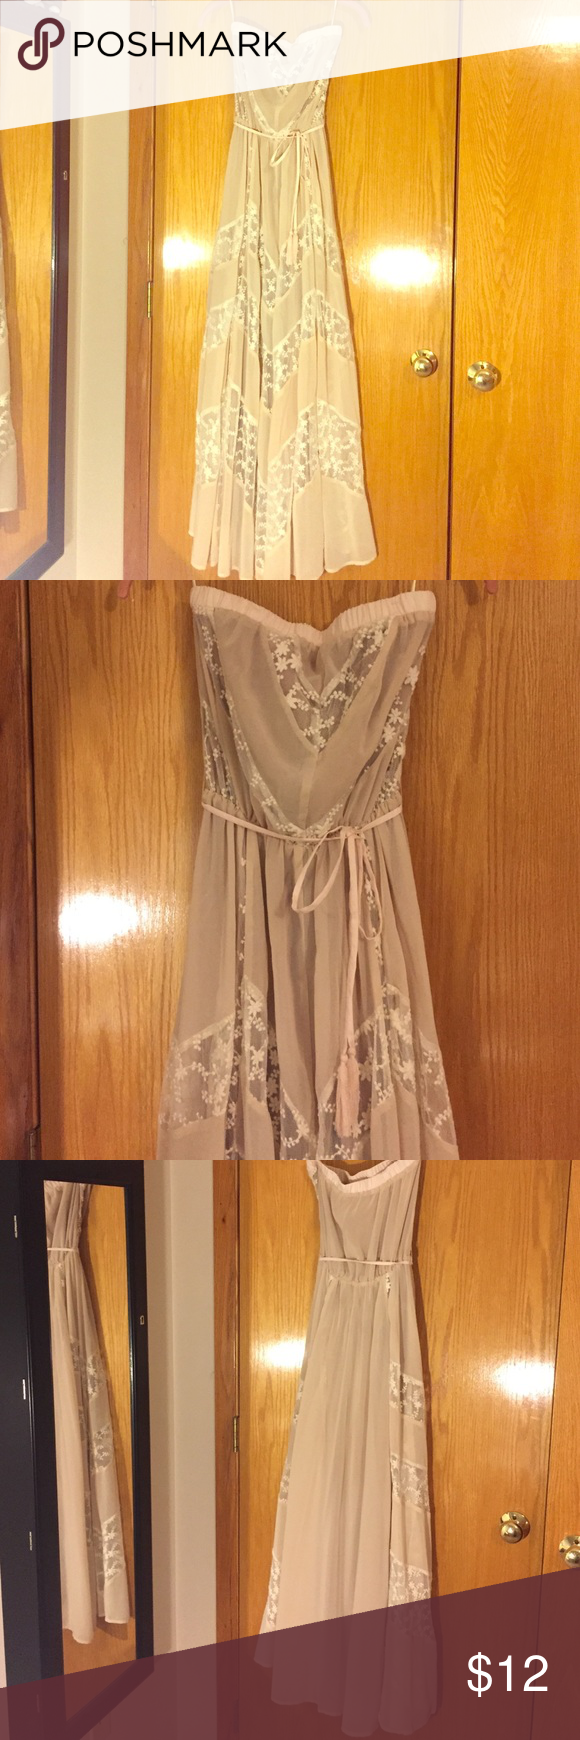 Long strapless dress Never worn!! This is a beautiful dress that can be dressed up or worn any way. Has a great flow. Lace flower print Arden B Dresses Strapless